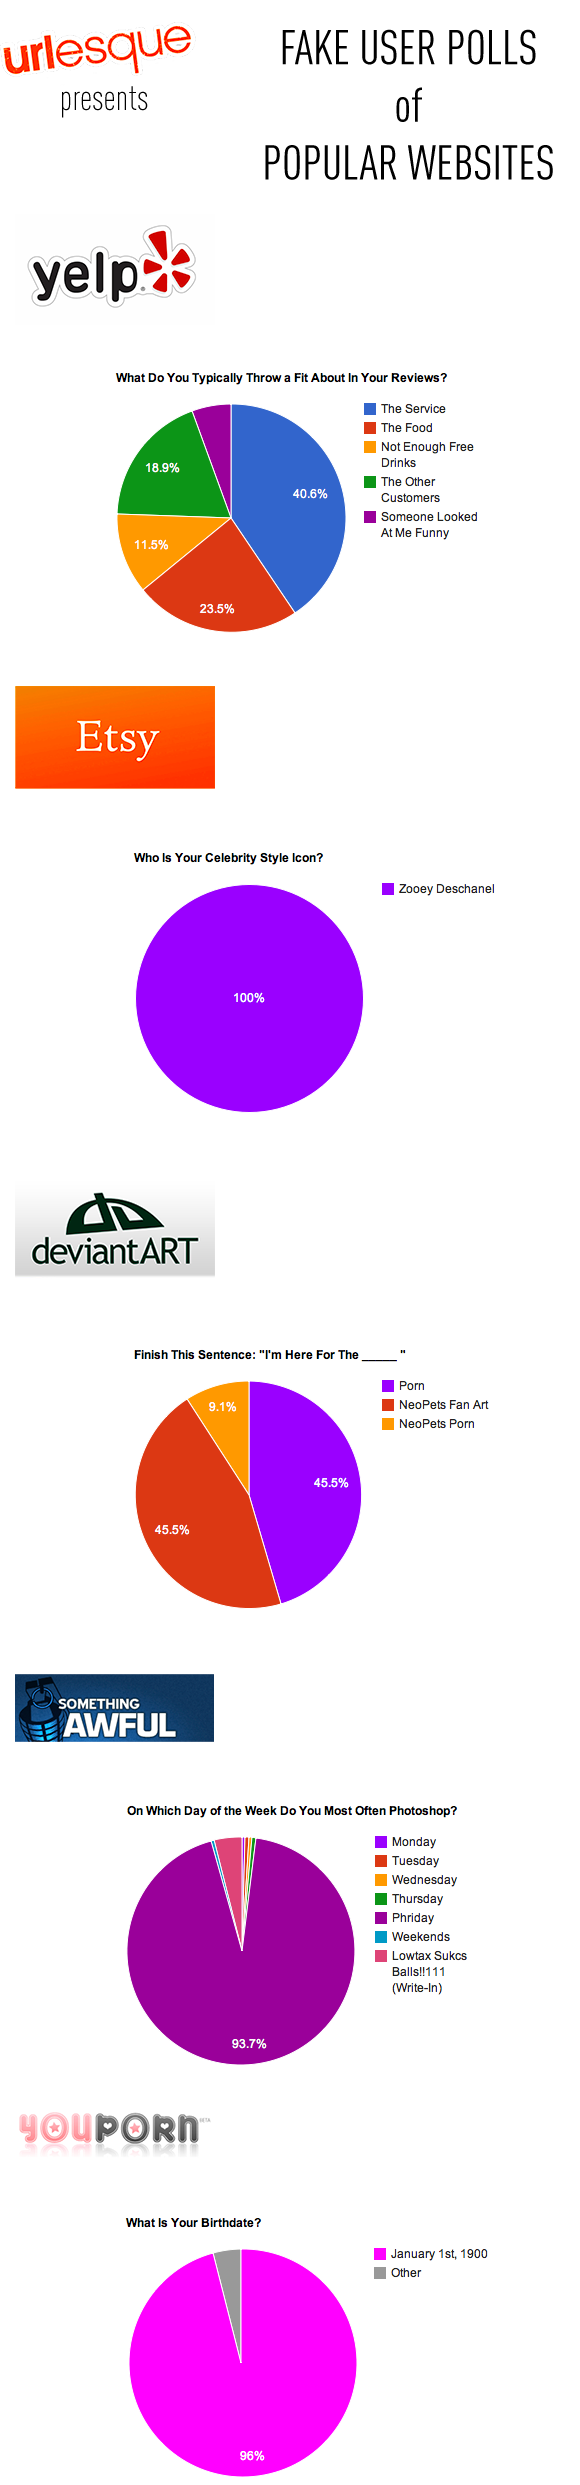 urlesque fake user polls of etsy yelp deviantart somethingawful and youporn